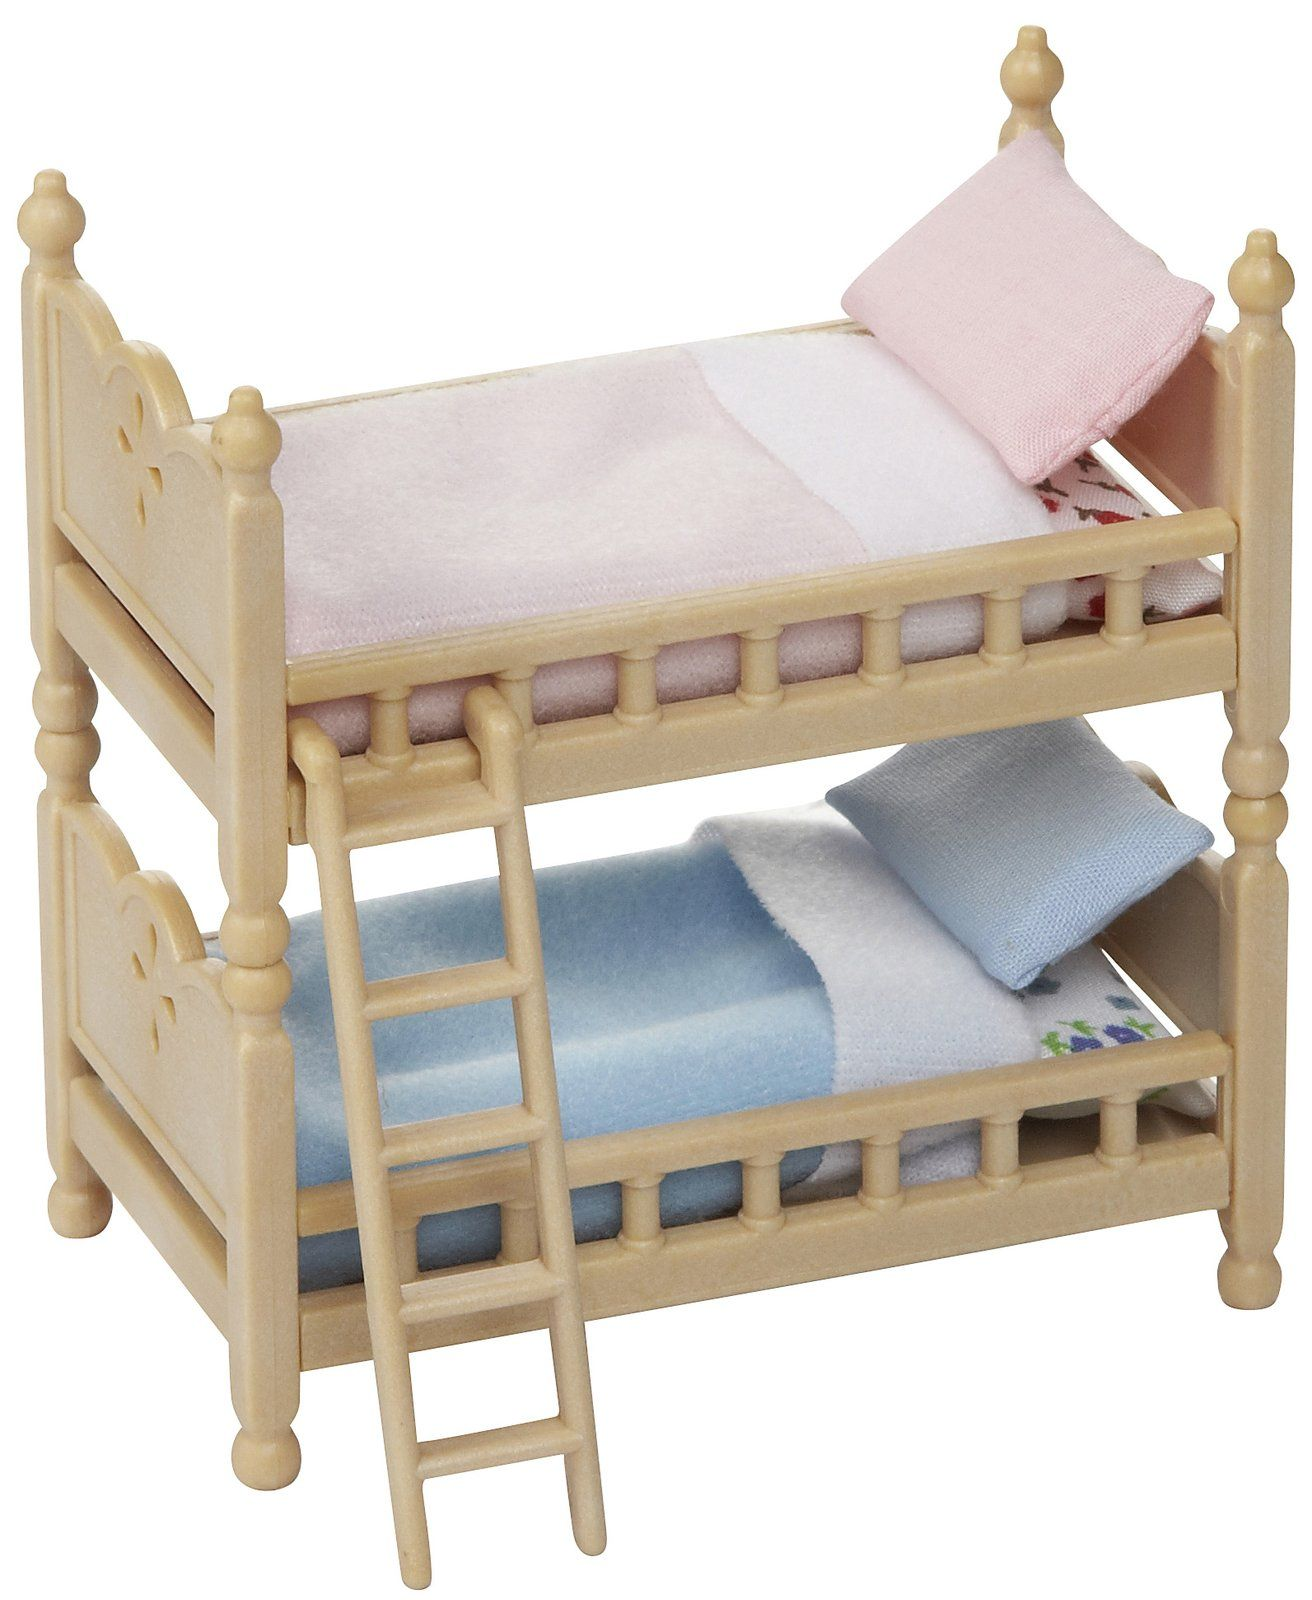 Calico Critters Bunk Beds Free Shipping Tiny Cute